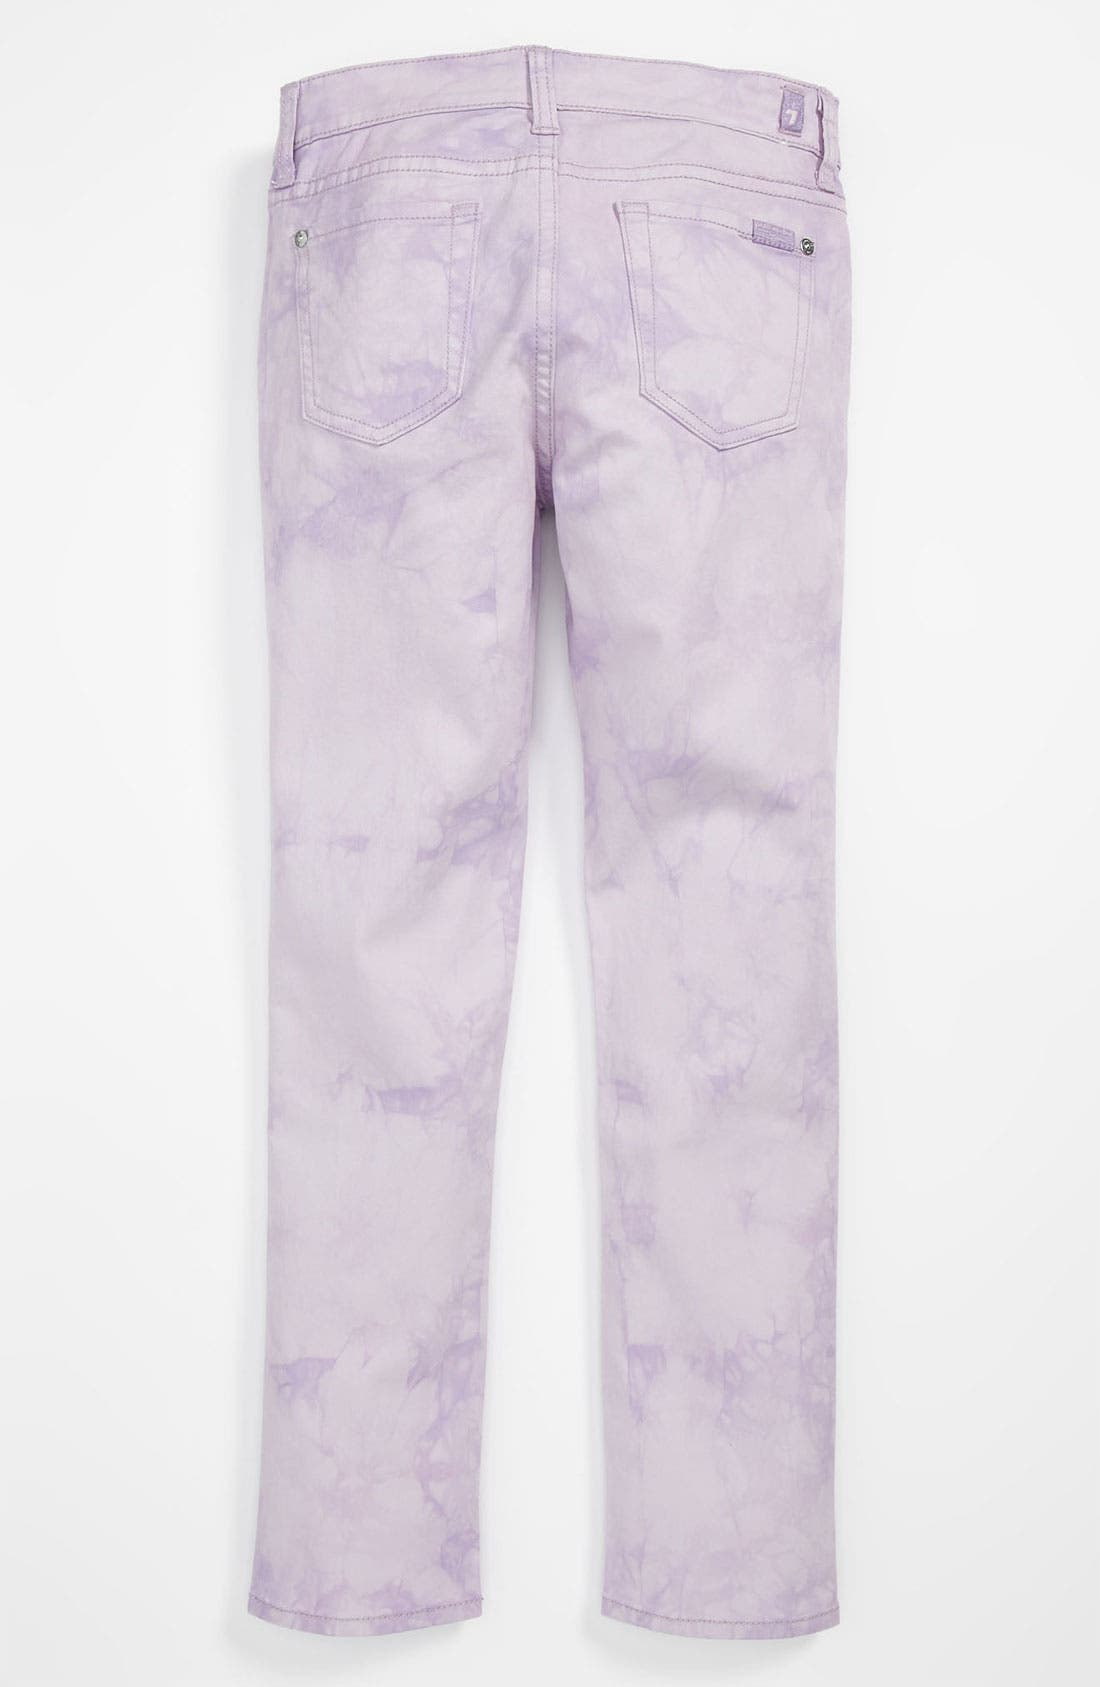 Main Image - 7 For All Mankind® 'The Skinny' Color Jeans (Big Girls)